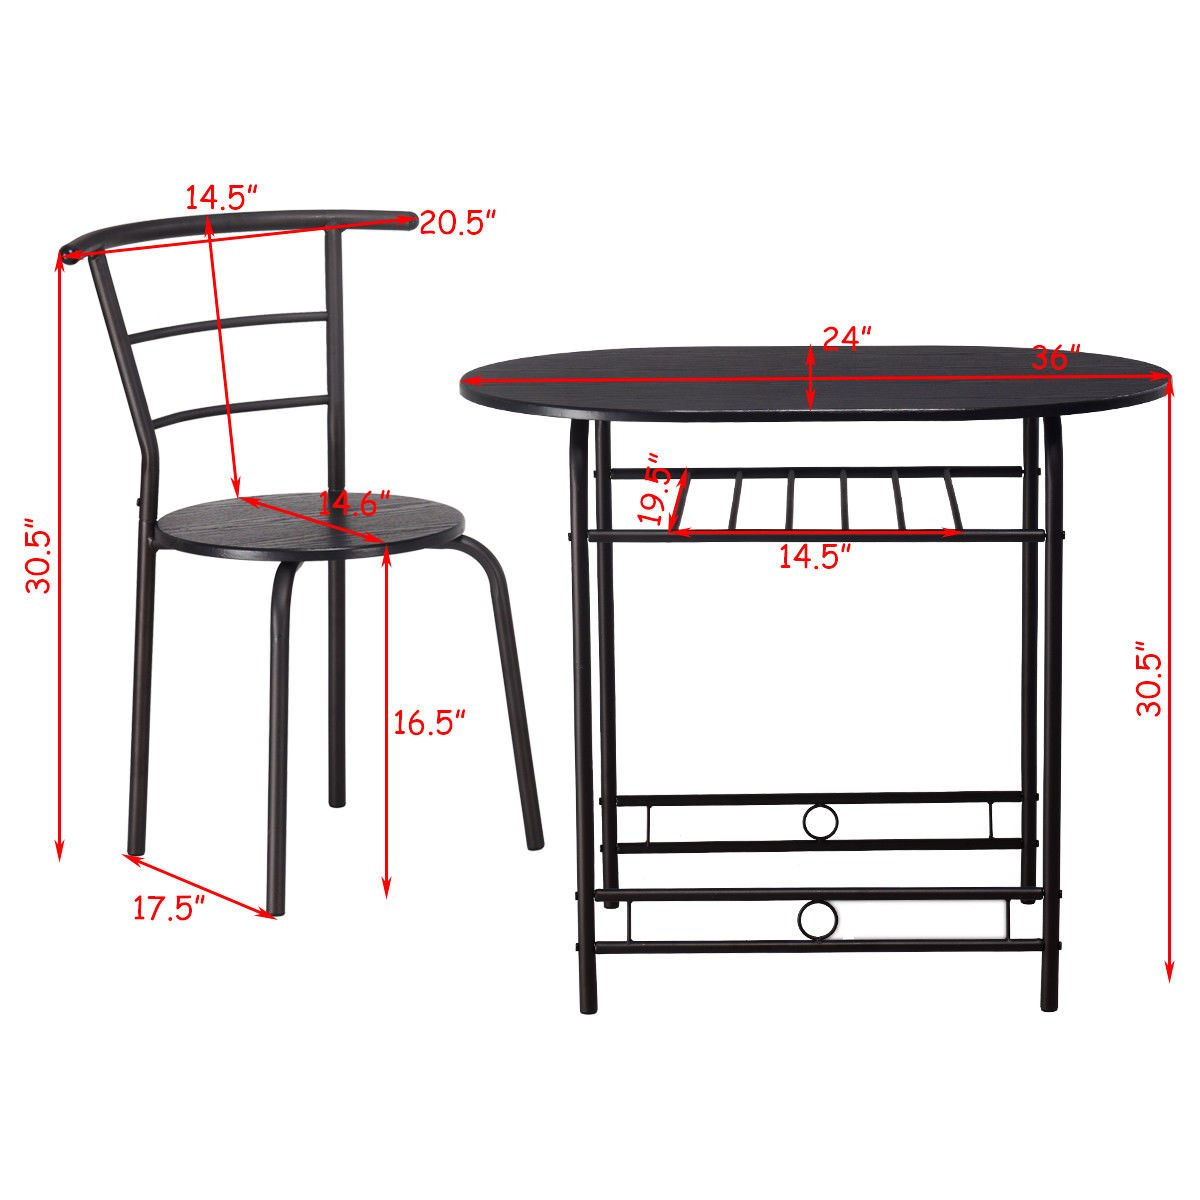 Giantex 3 PCS Dining Table Set w/1 Table and 2 Chairs Home Restaurant Breakfast Bistro Pub Kitchen Dining Room Furniture (Black) by Giantex (Image #5)